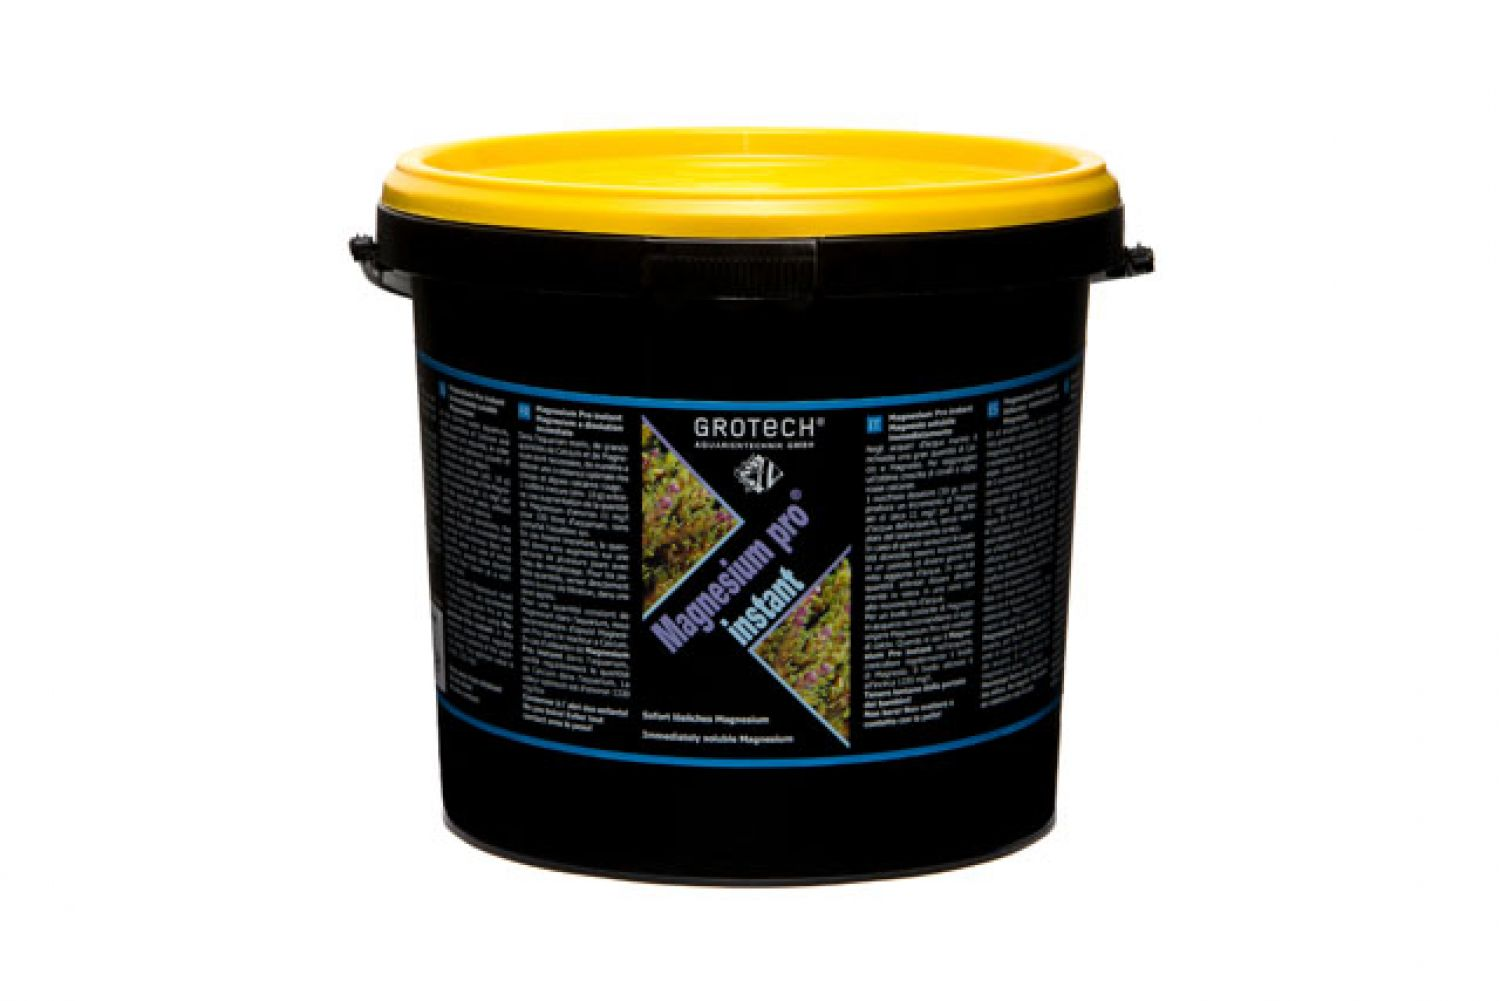 GroTech Magnesium pro instant 3000 g-Eimer